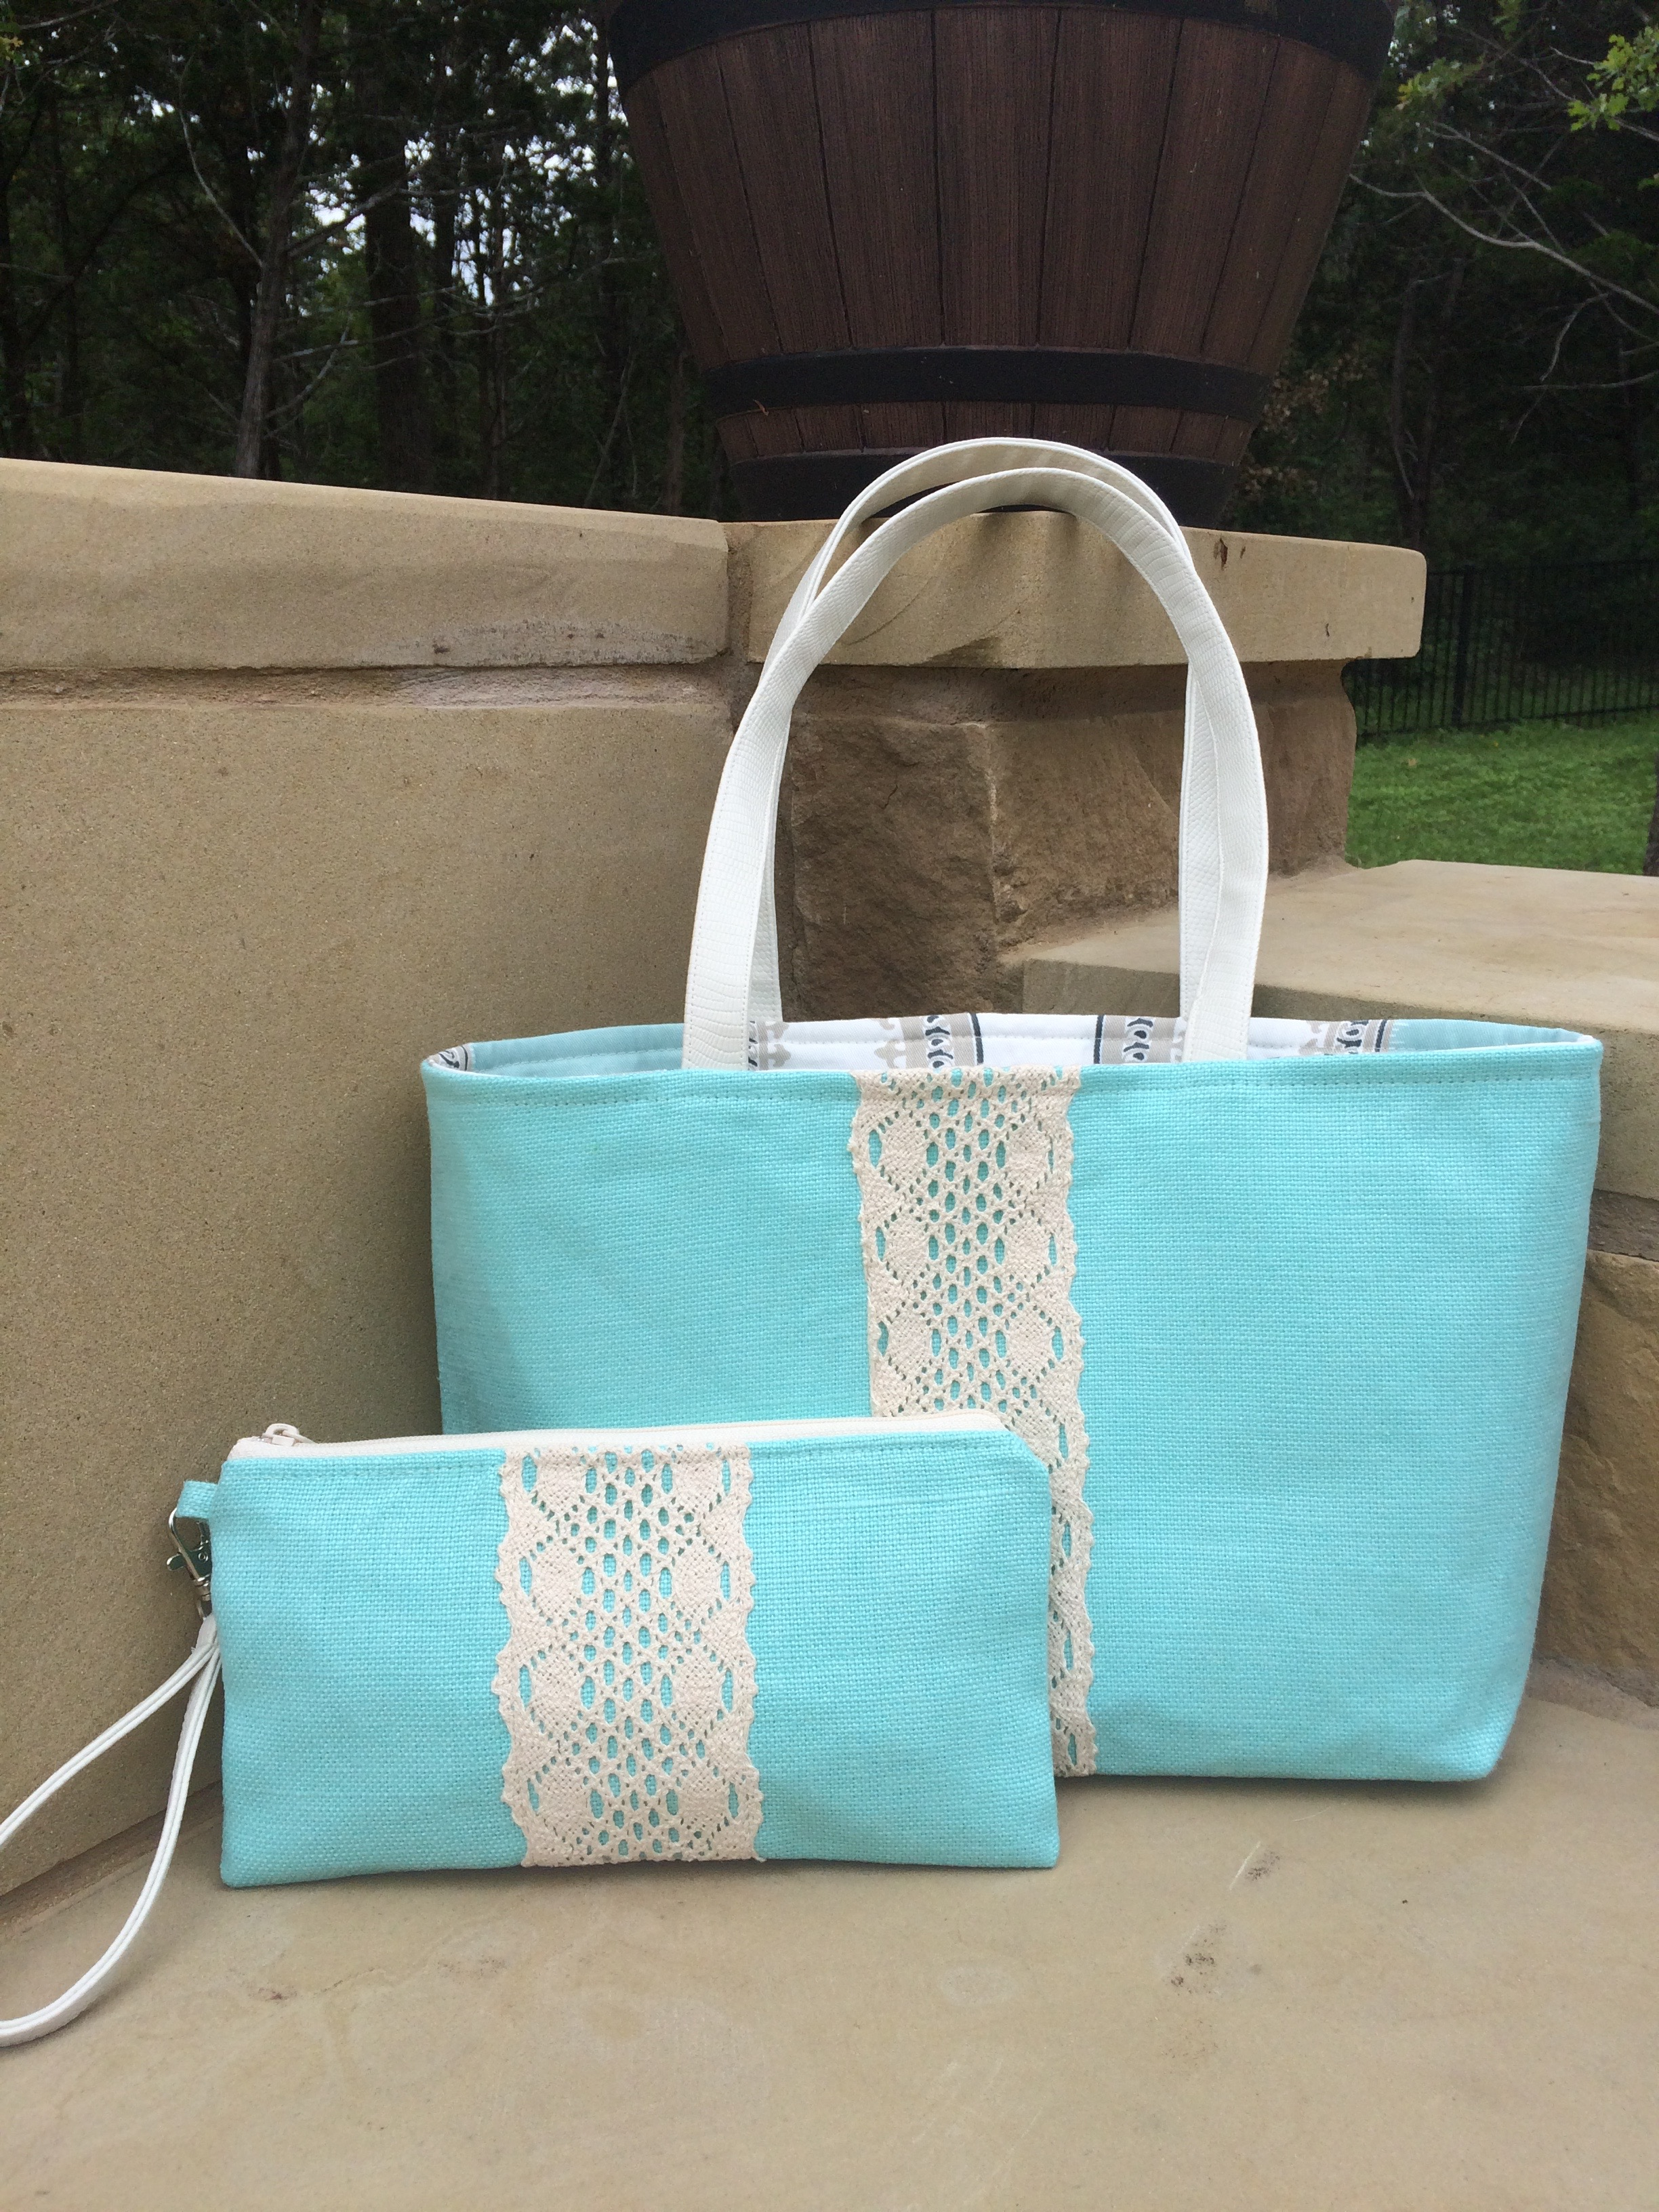 Sassy Tote • $78   More styles available.